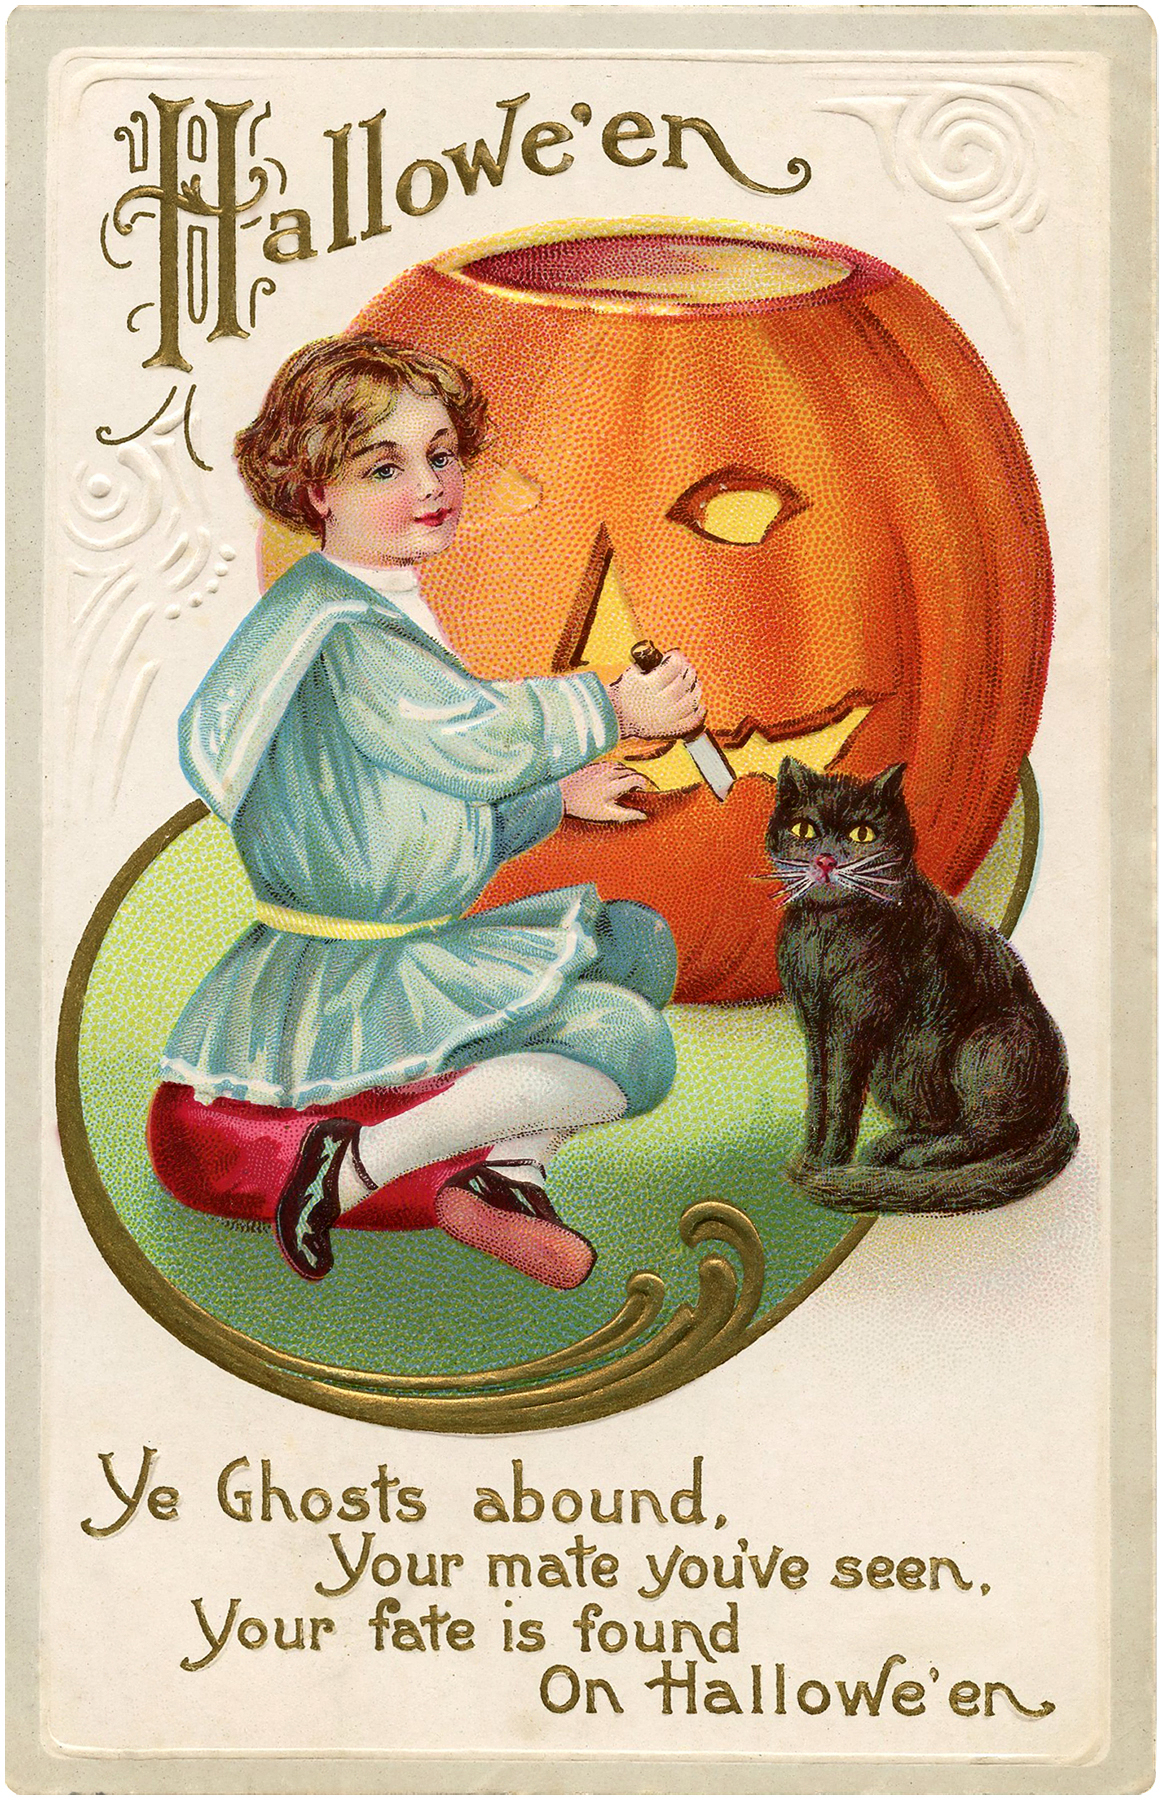 Vintage Pumpkin Carving Image The Graphics Fairy